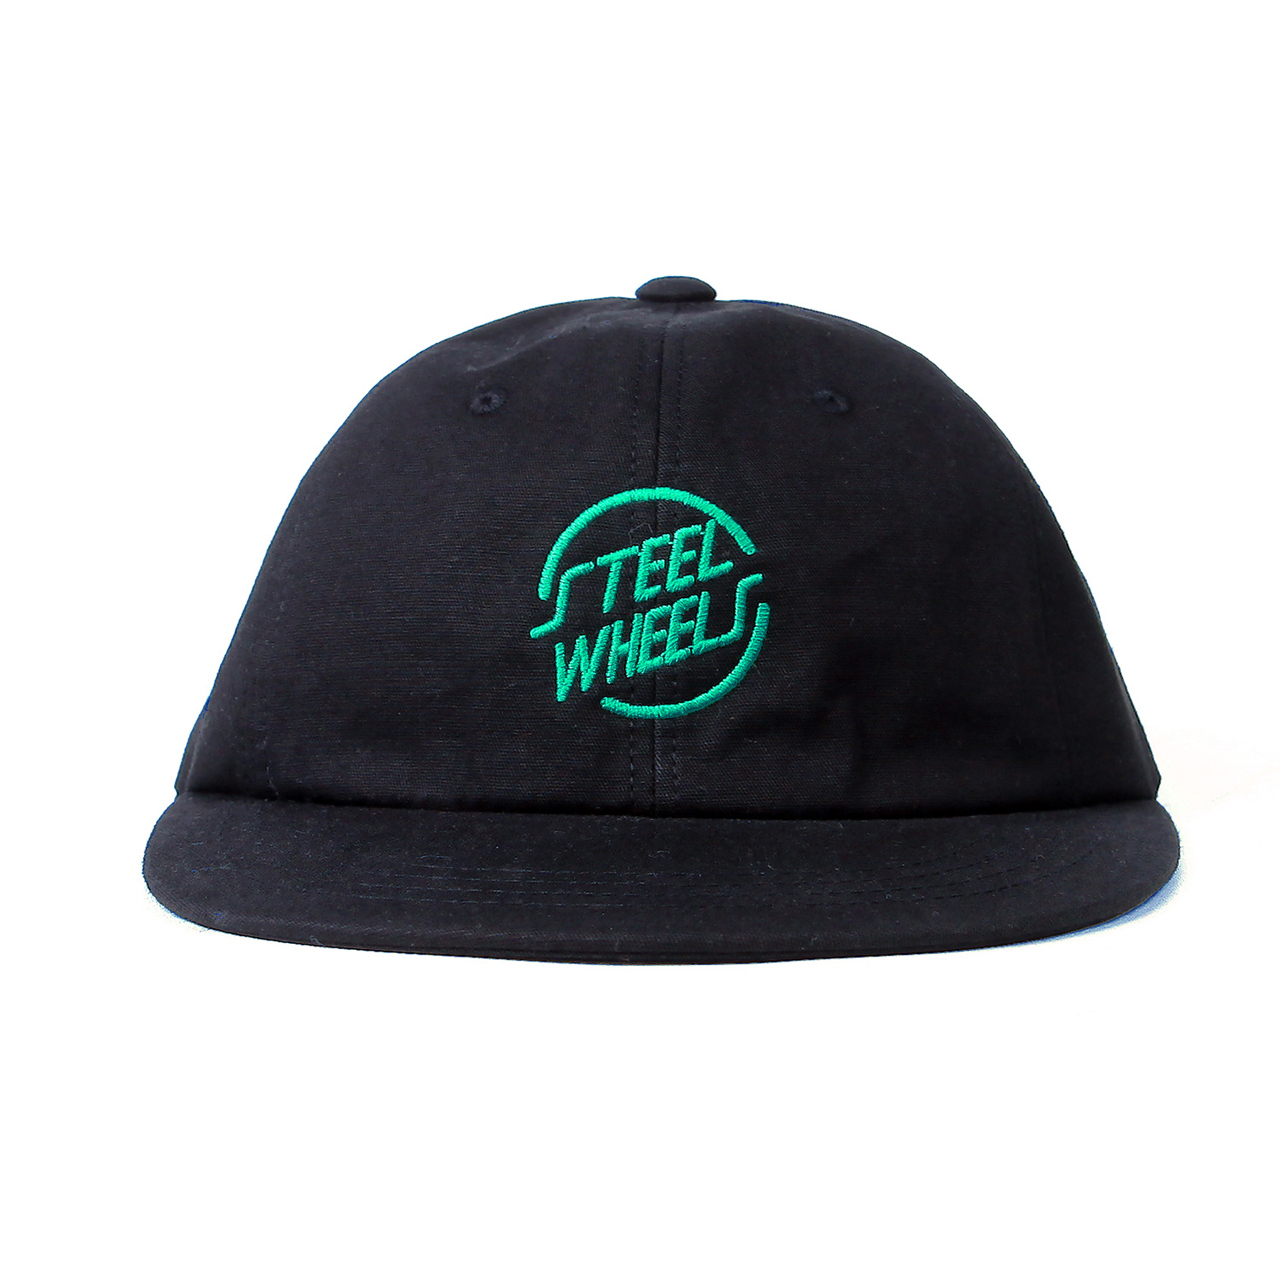 STEELWHEELS SKATEBOARDER CAP-BLACK